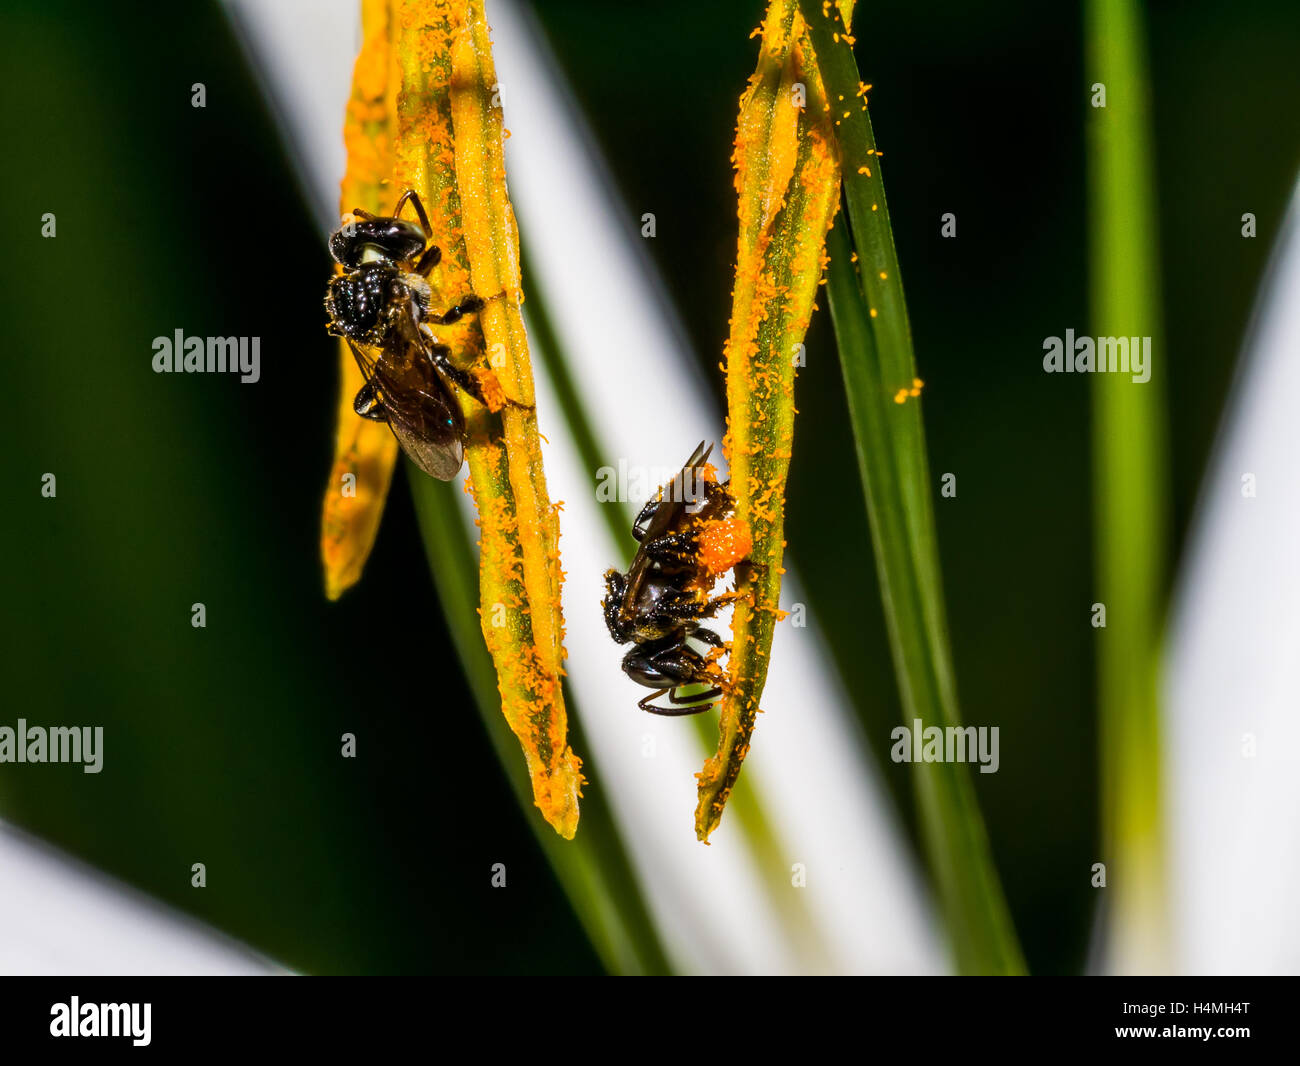 Stingless Bee on the pollen in the garden - Stock Image